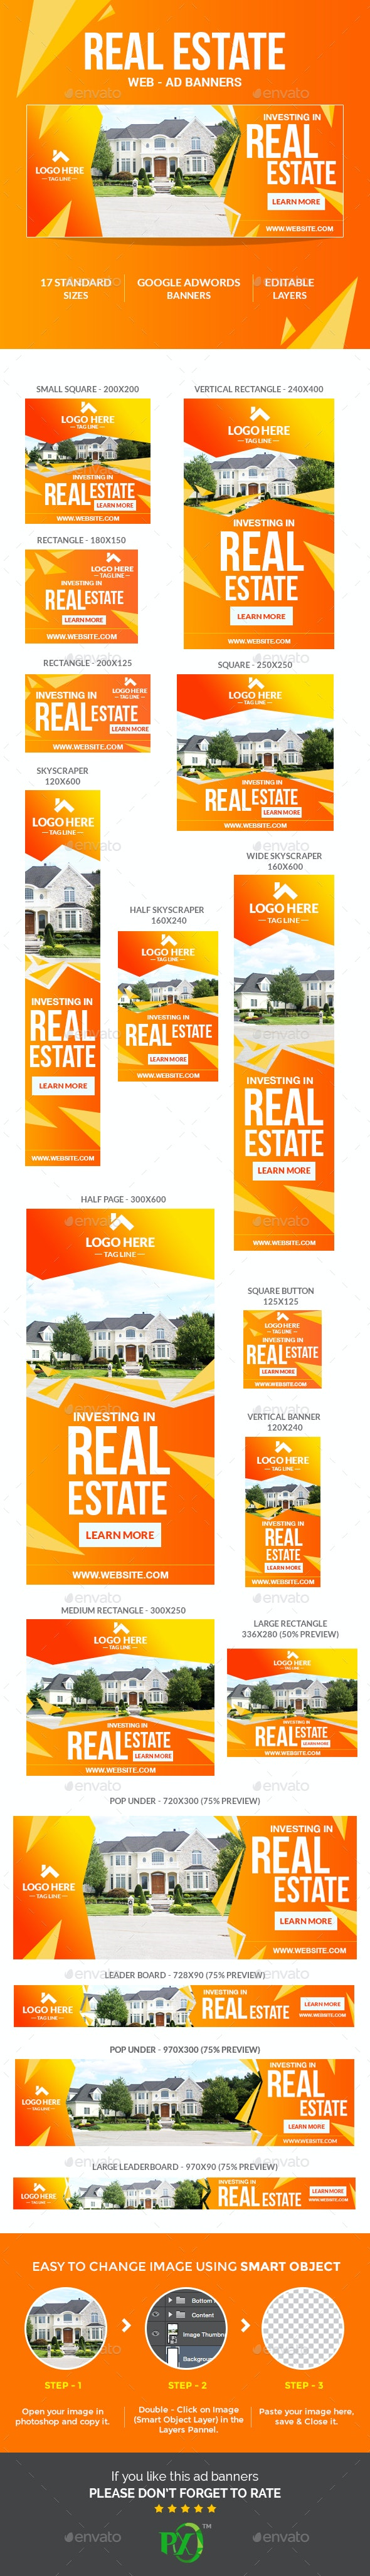 Real Estate Ad Banners - Banners & Ads Web Elements